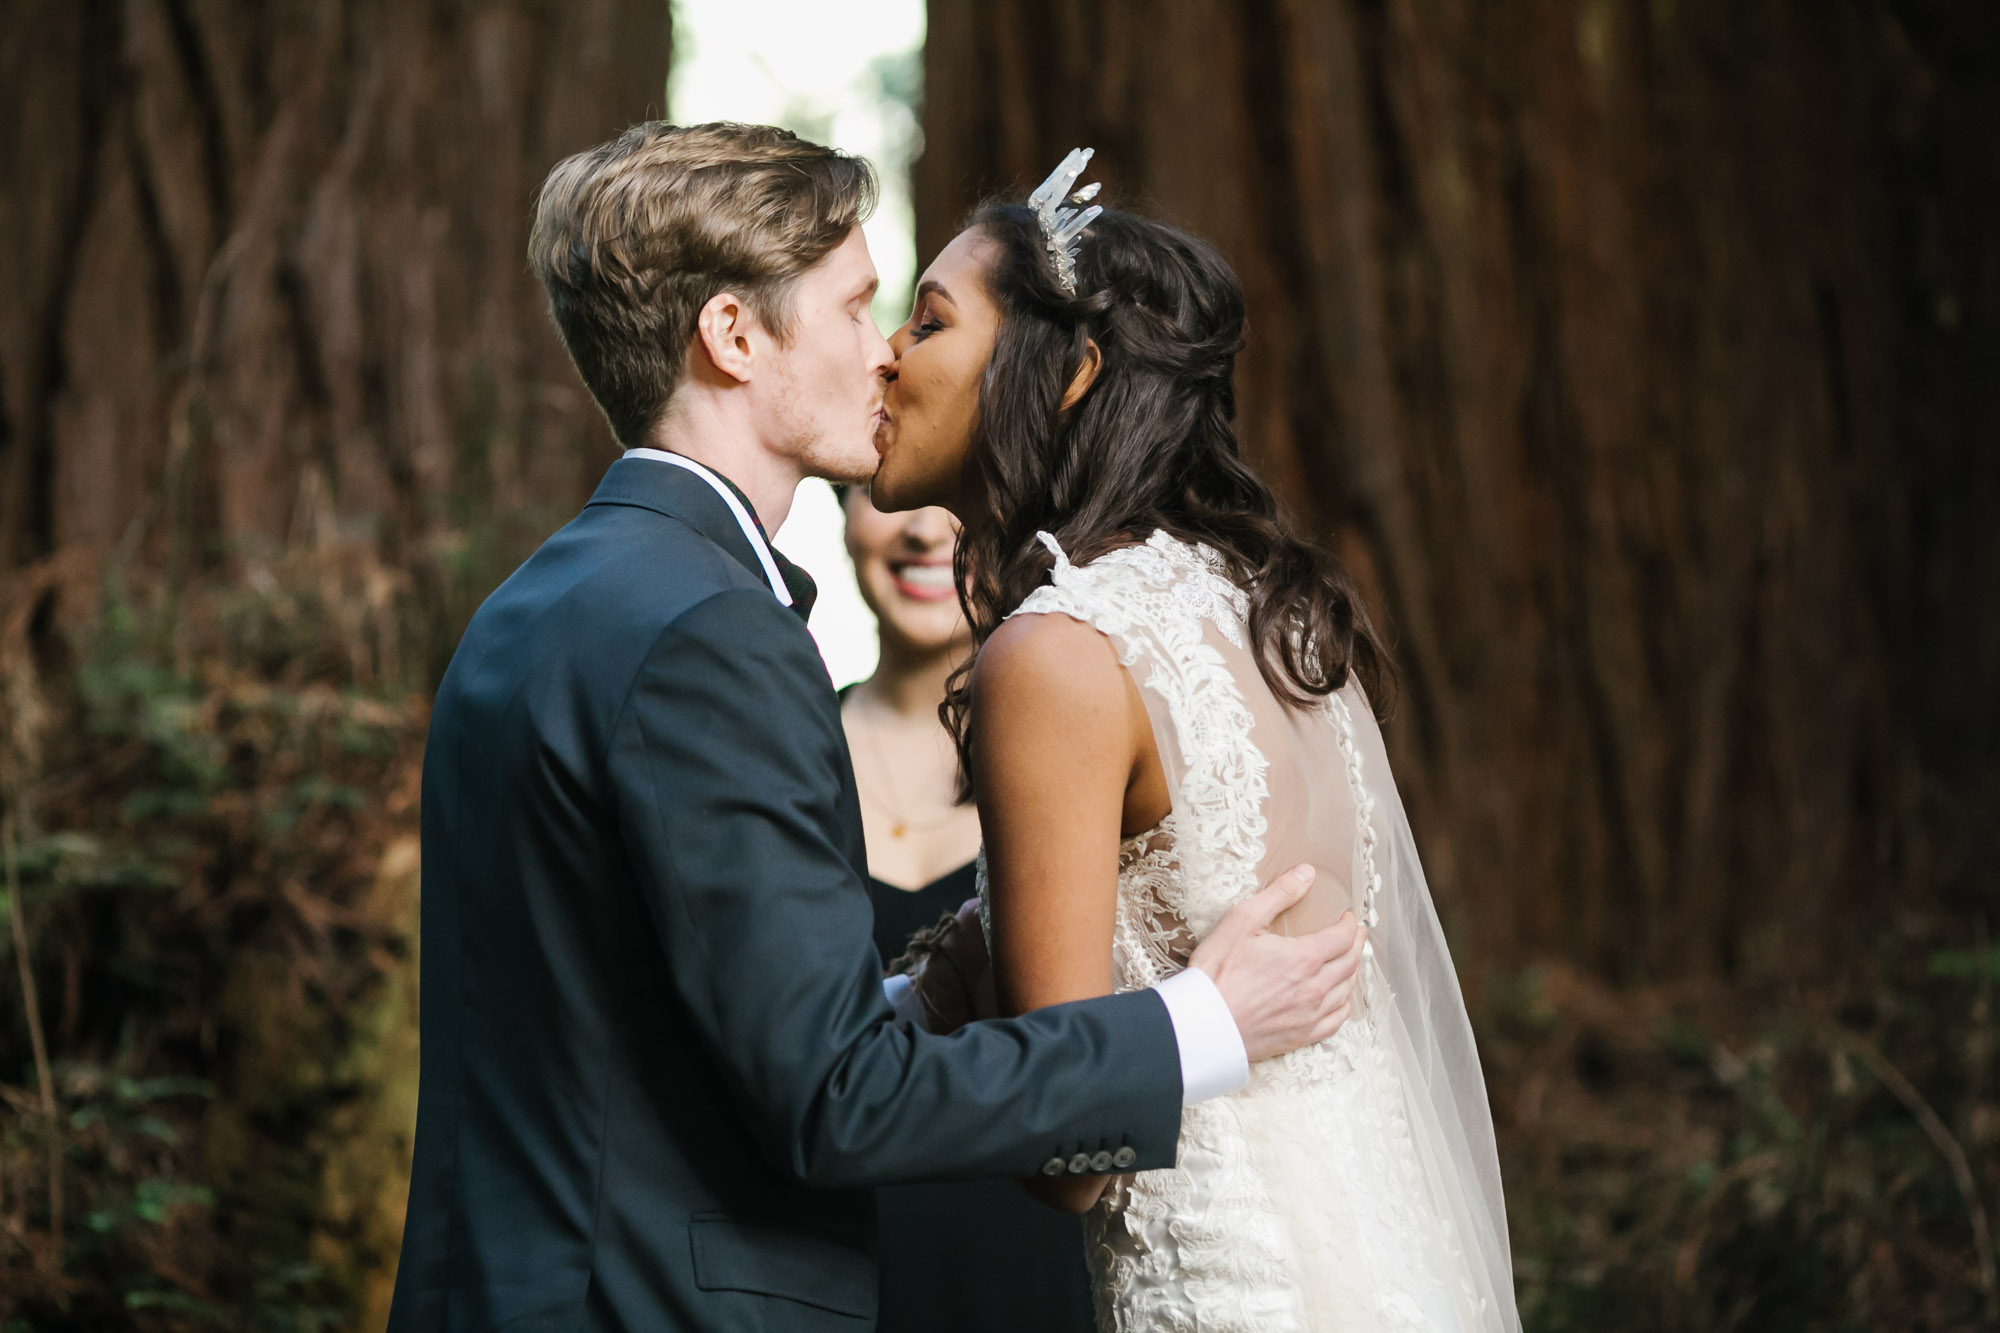 Bride and groom share their first kiss at their wedding ceremony